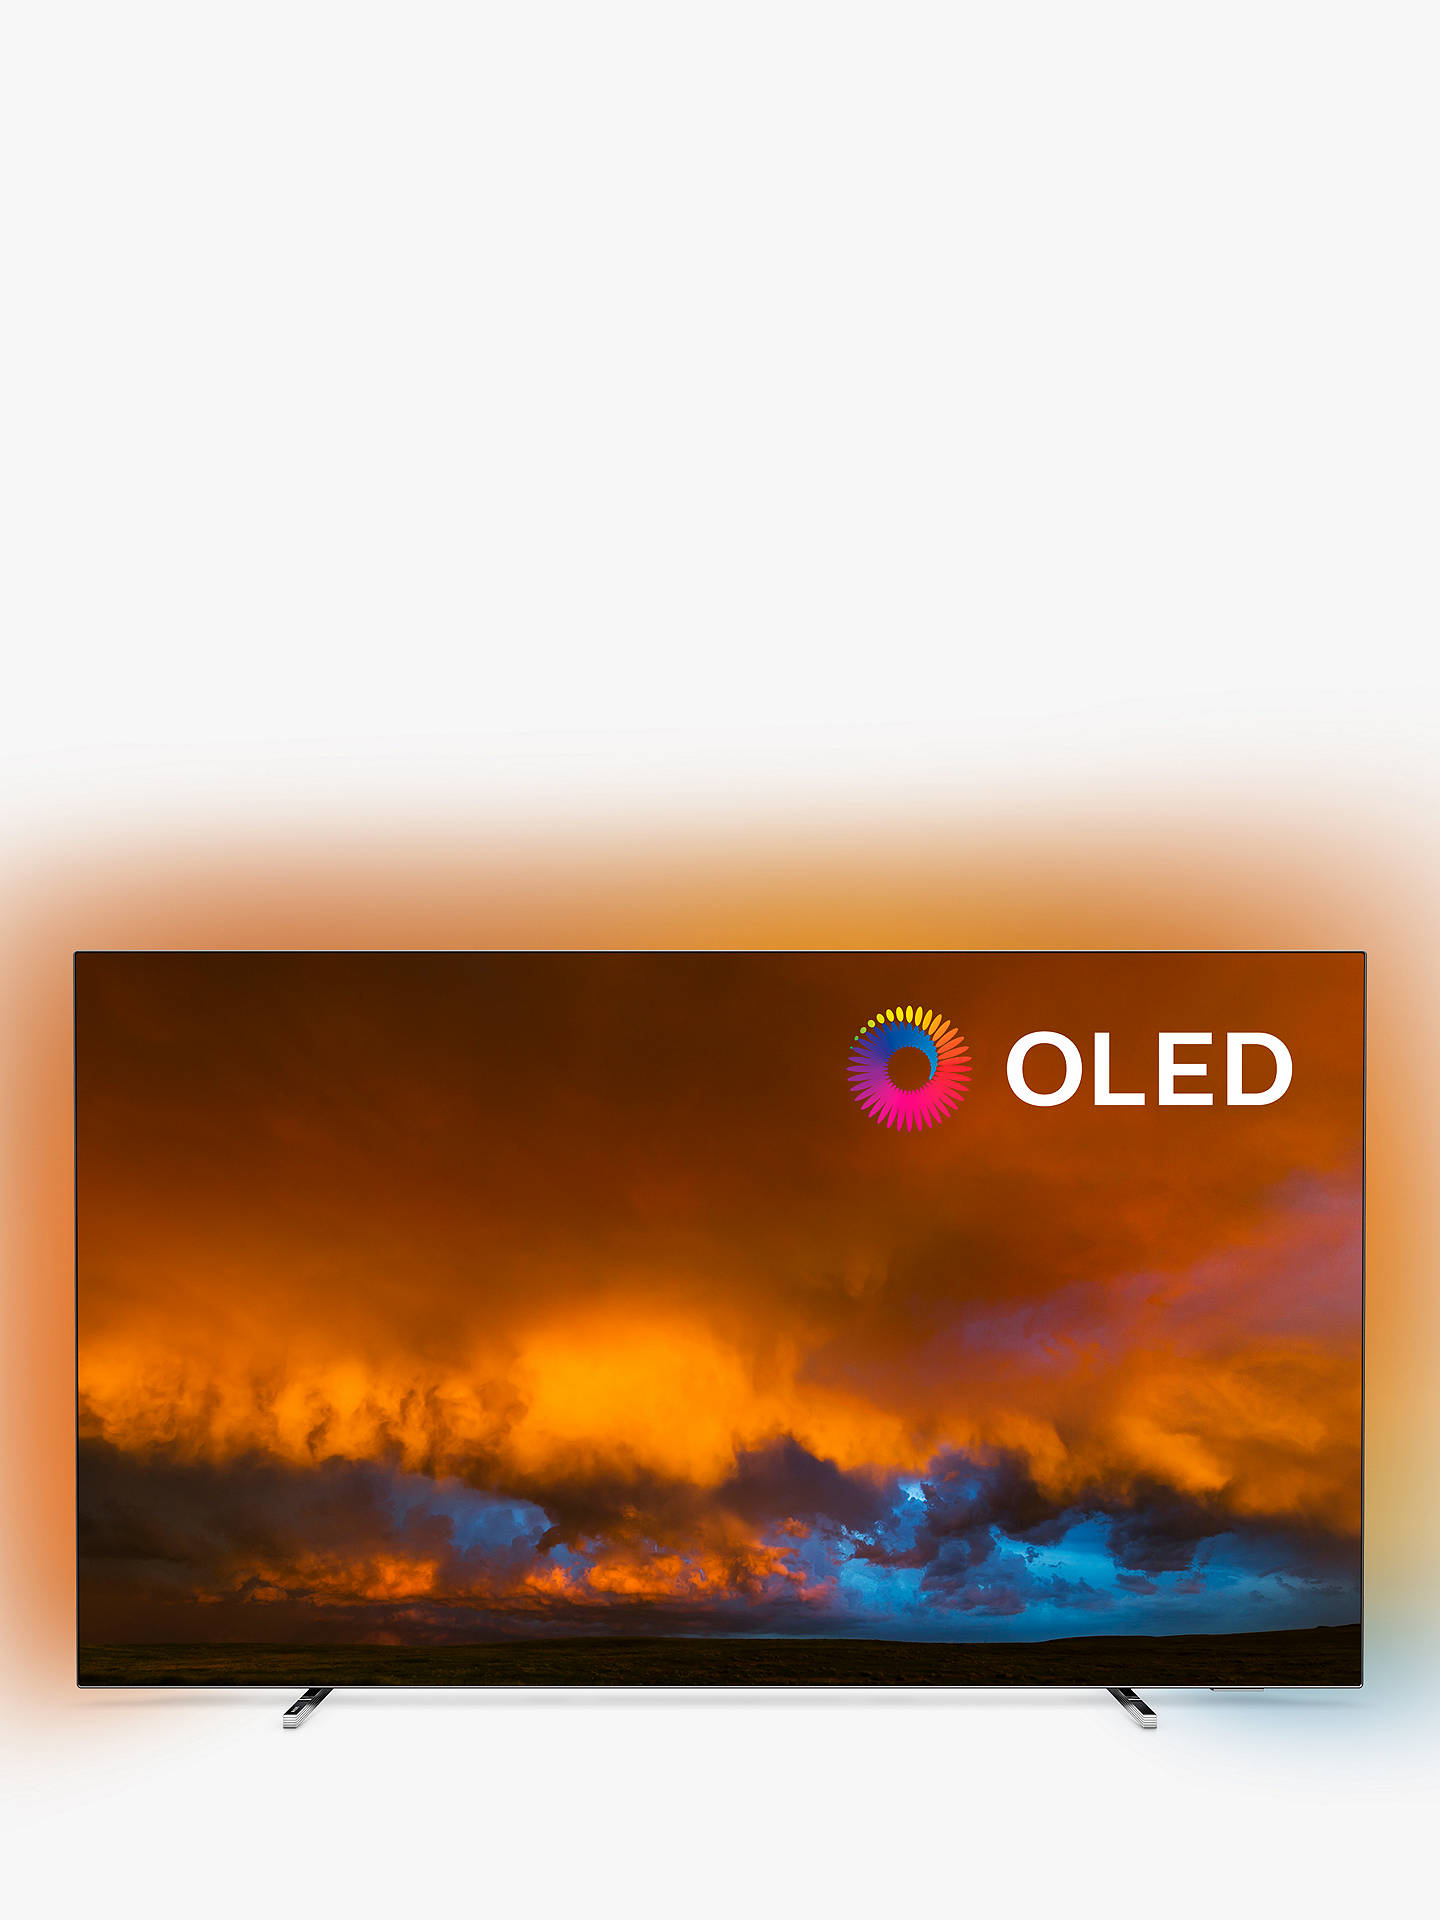 "Philips 55 Oled804 (2019) Oled Hdr 4 K Ultra Hd Smart Android Tv, 55"" With Freeview Hd & Ambilight, Silver by Philips"